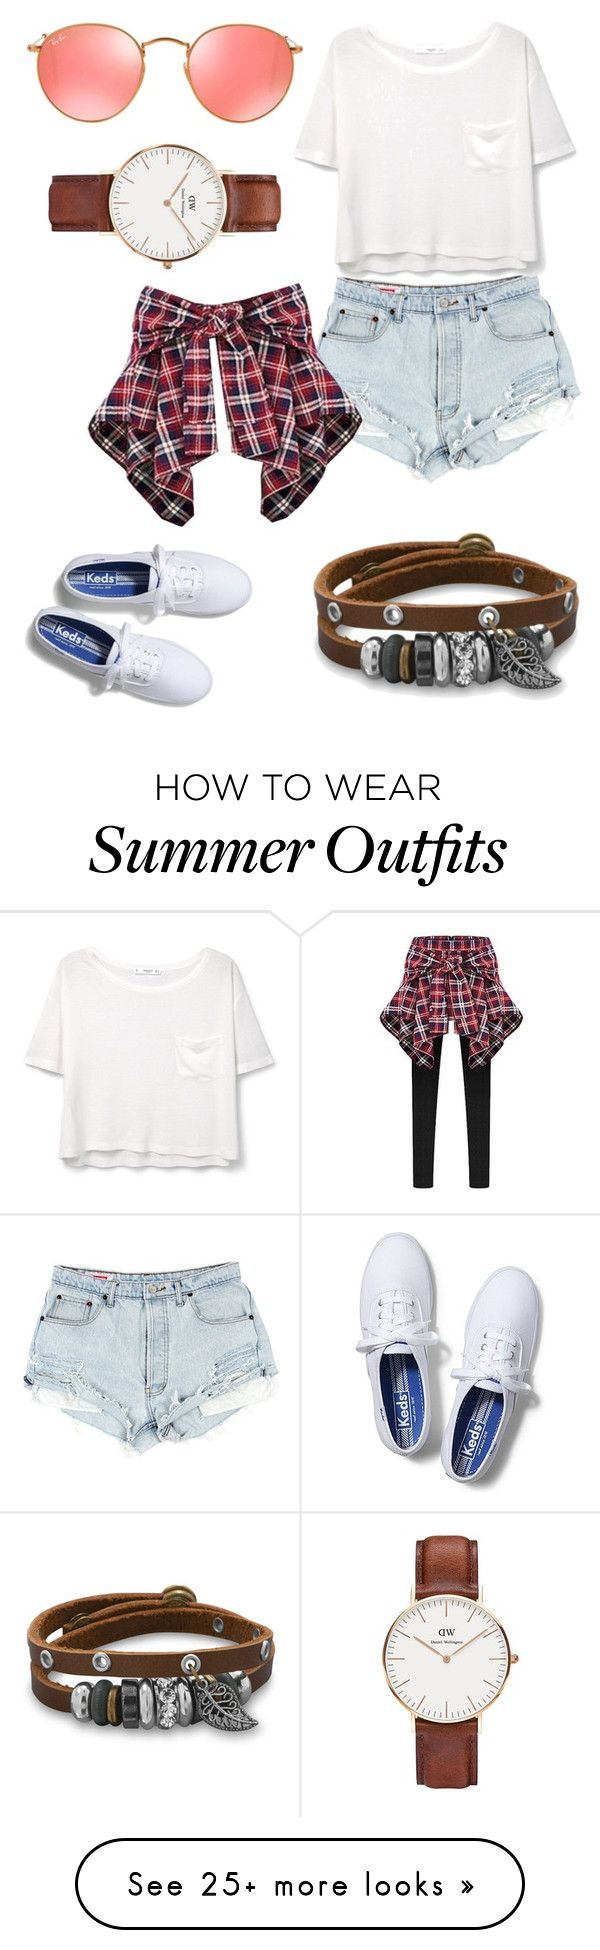 Chic but comfy outdoorsy outfit by bbysplatt104 on Polyvore featuring MANGO, Keds, Ray-Ban, BillyTheTree, Daniel Wellington and Summer